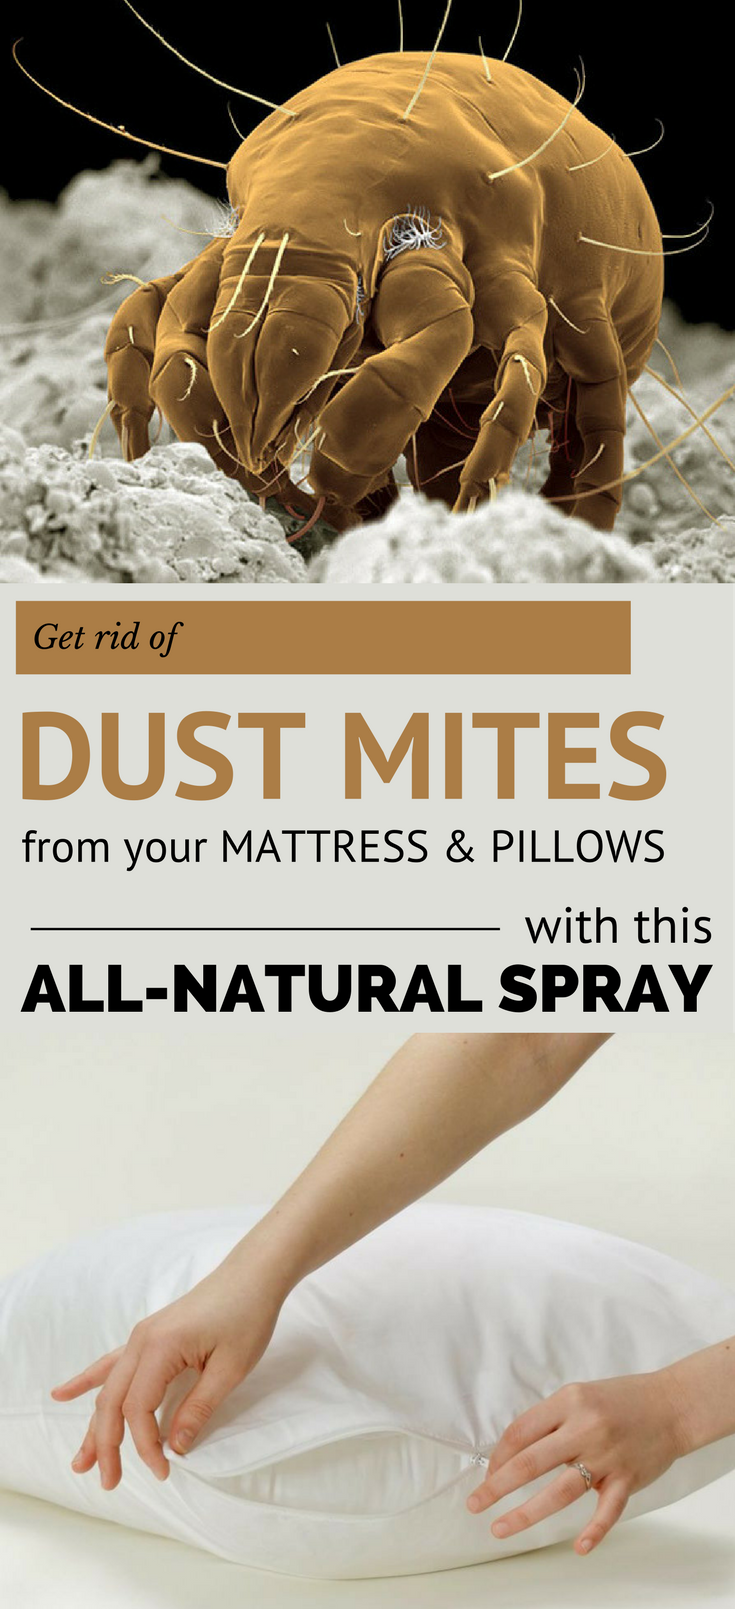 Get Rid Of Dust Mites From Your Mattress And Pillows With